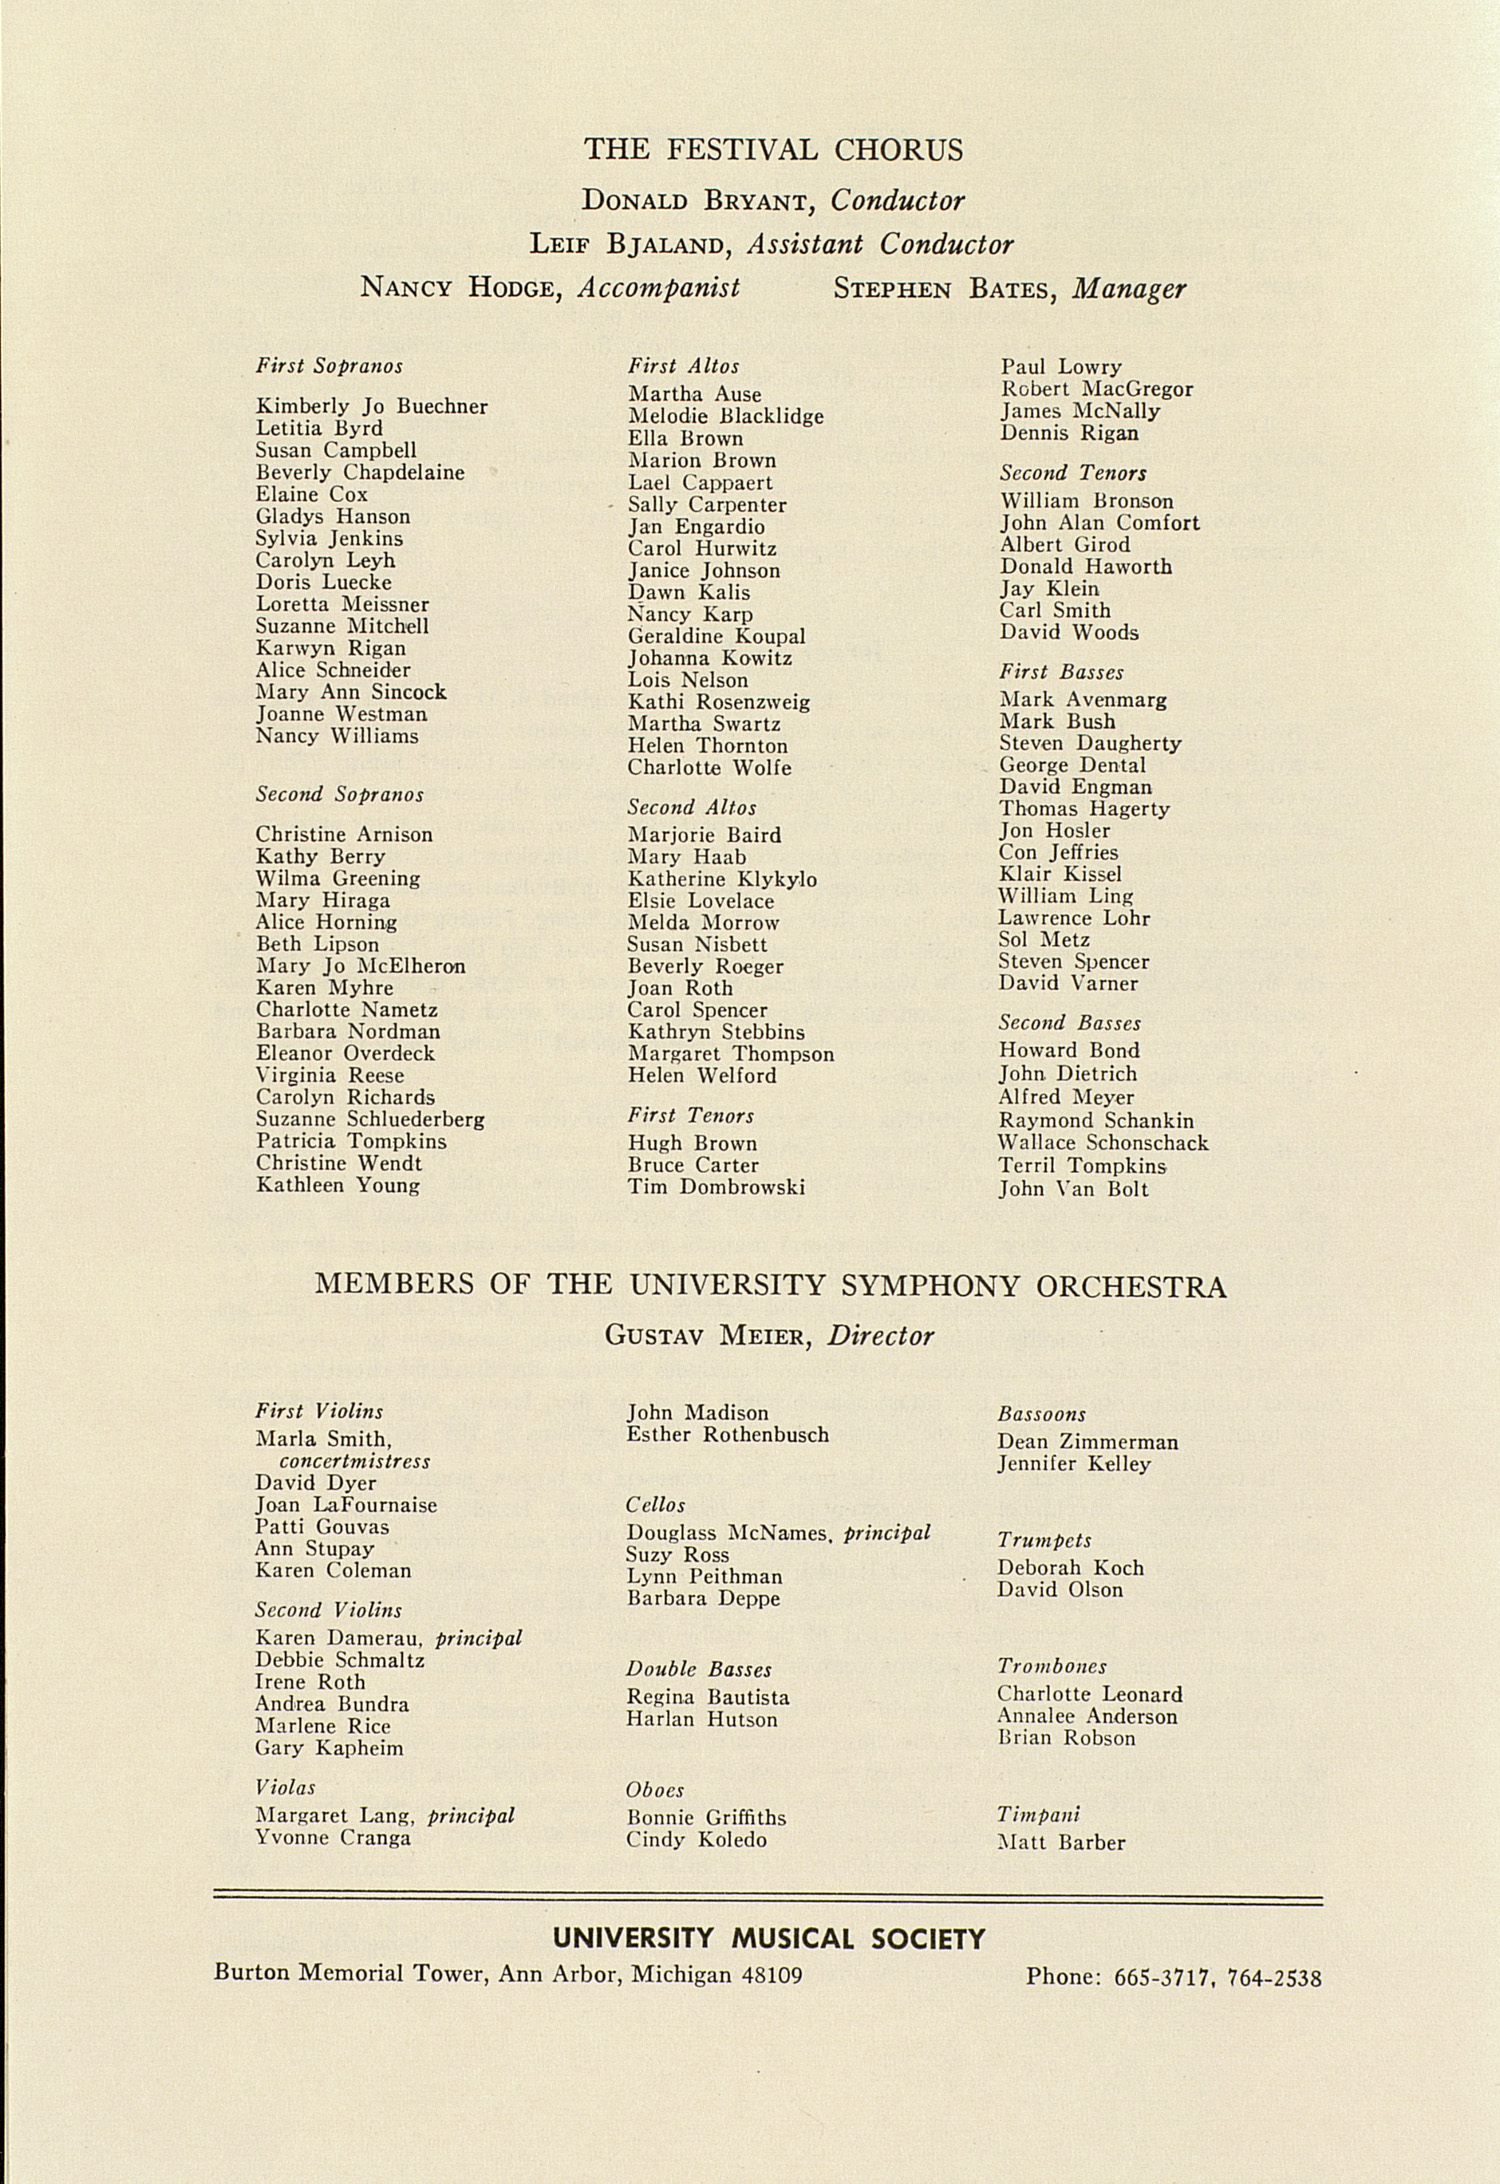 UMS Concert Program, February 24, 1980: Founders Day Concert --  image